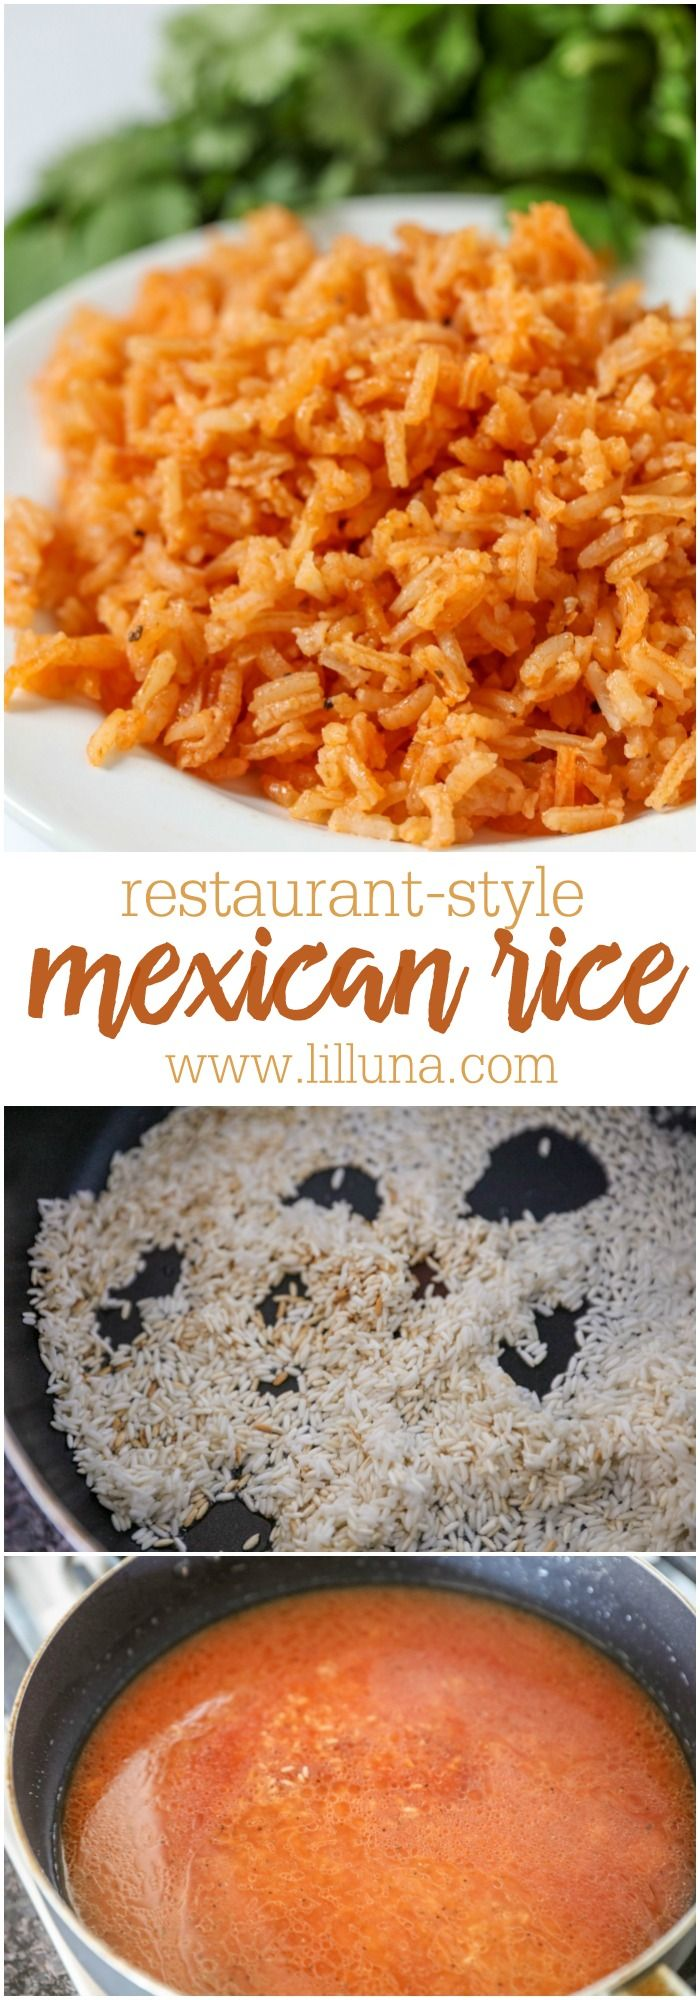 37 best comida mexicana images on pinterest rezepte delicious restaurant style mex restaurant style mexican rice it is one of the easiest and most delicious recipes youll try our whole family loves it forumfinder